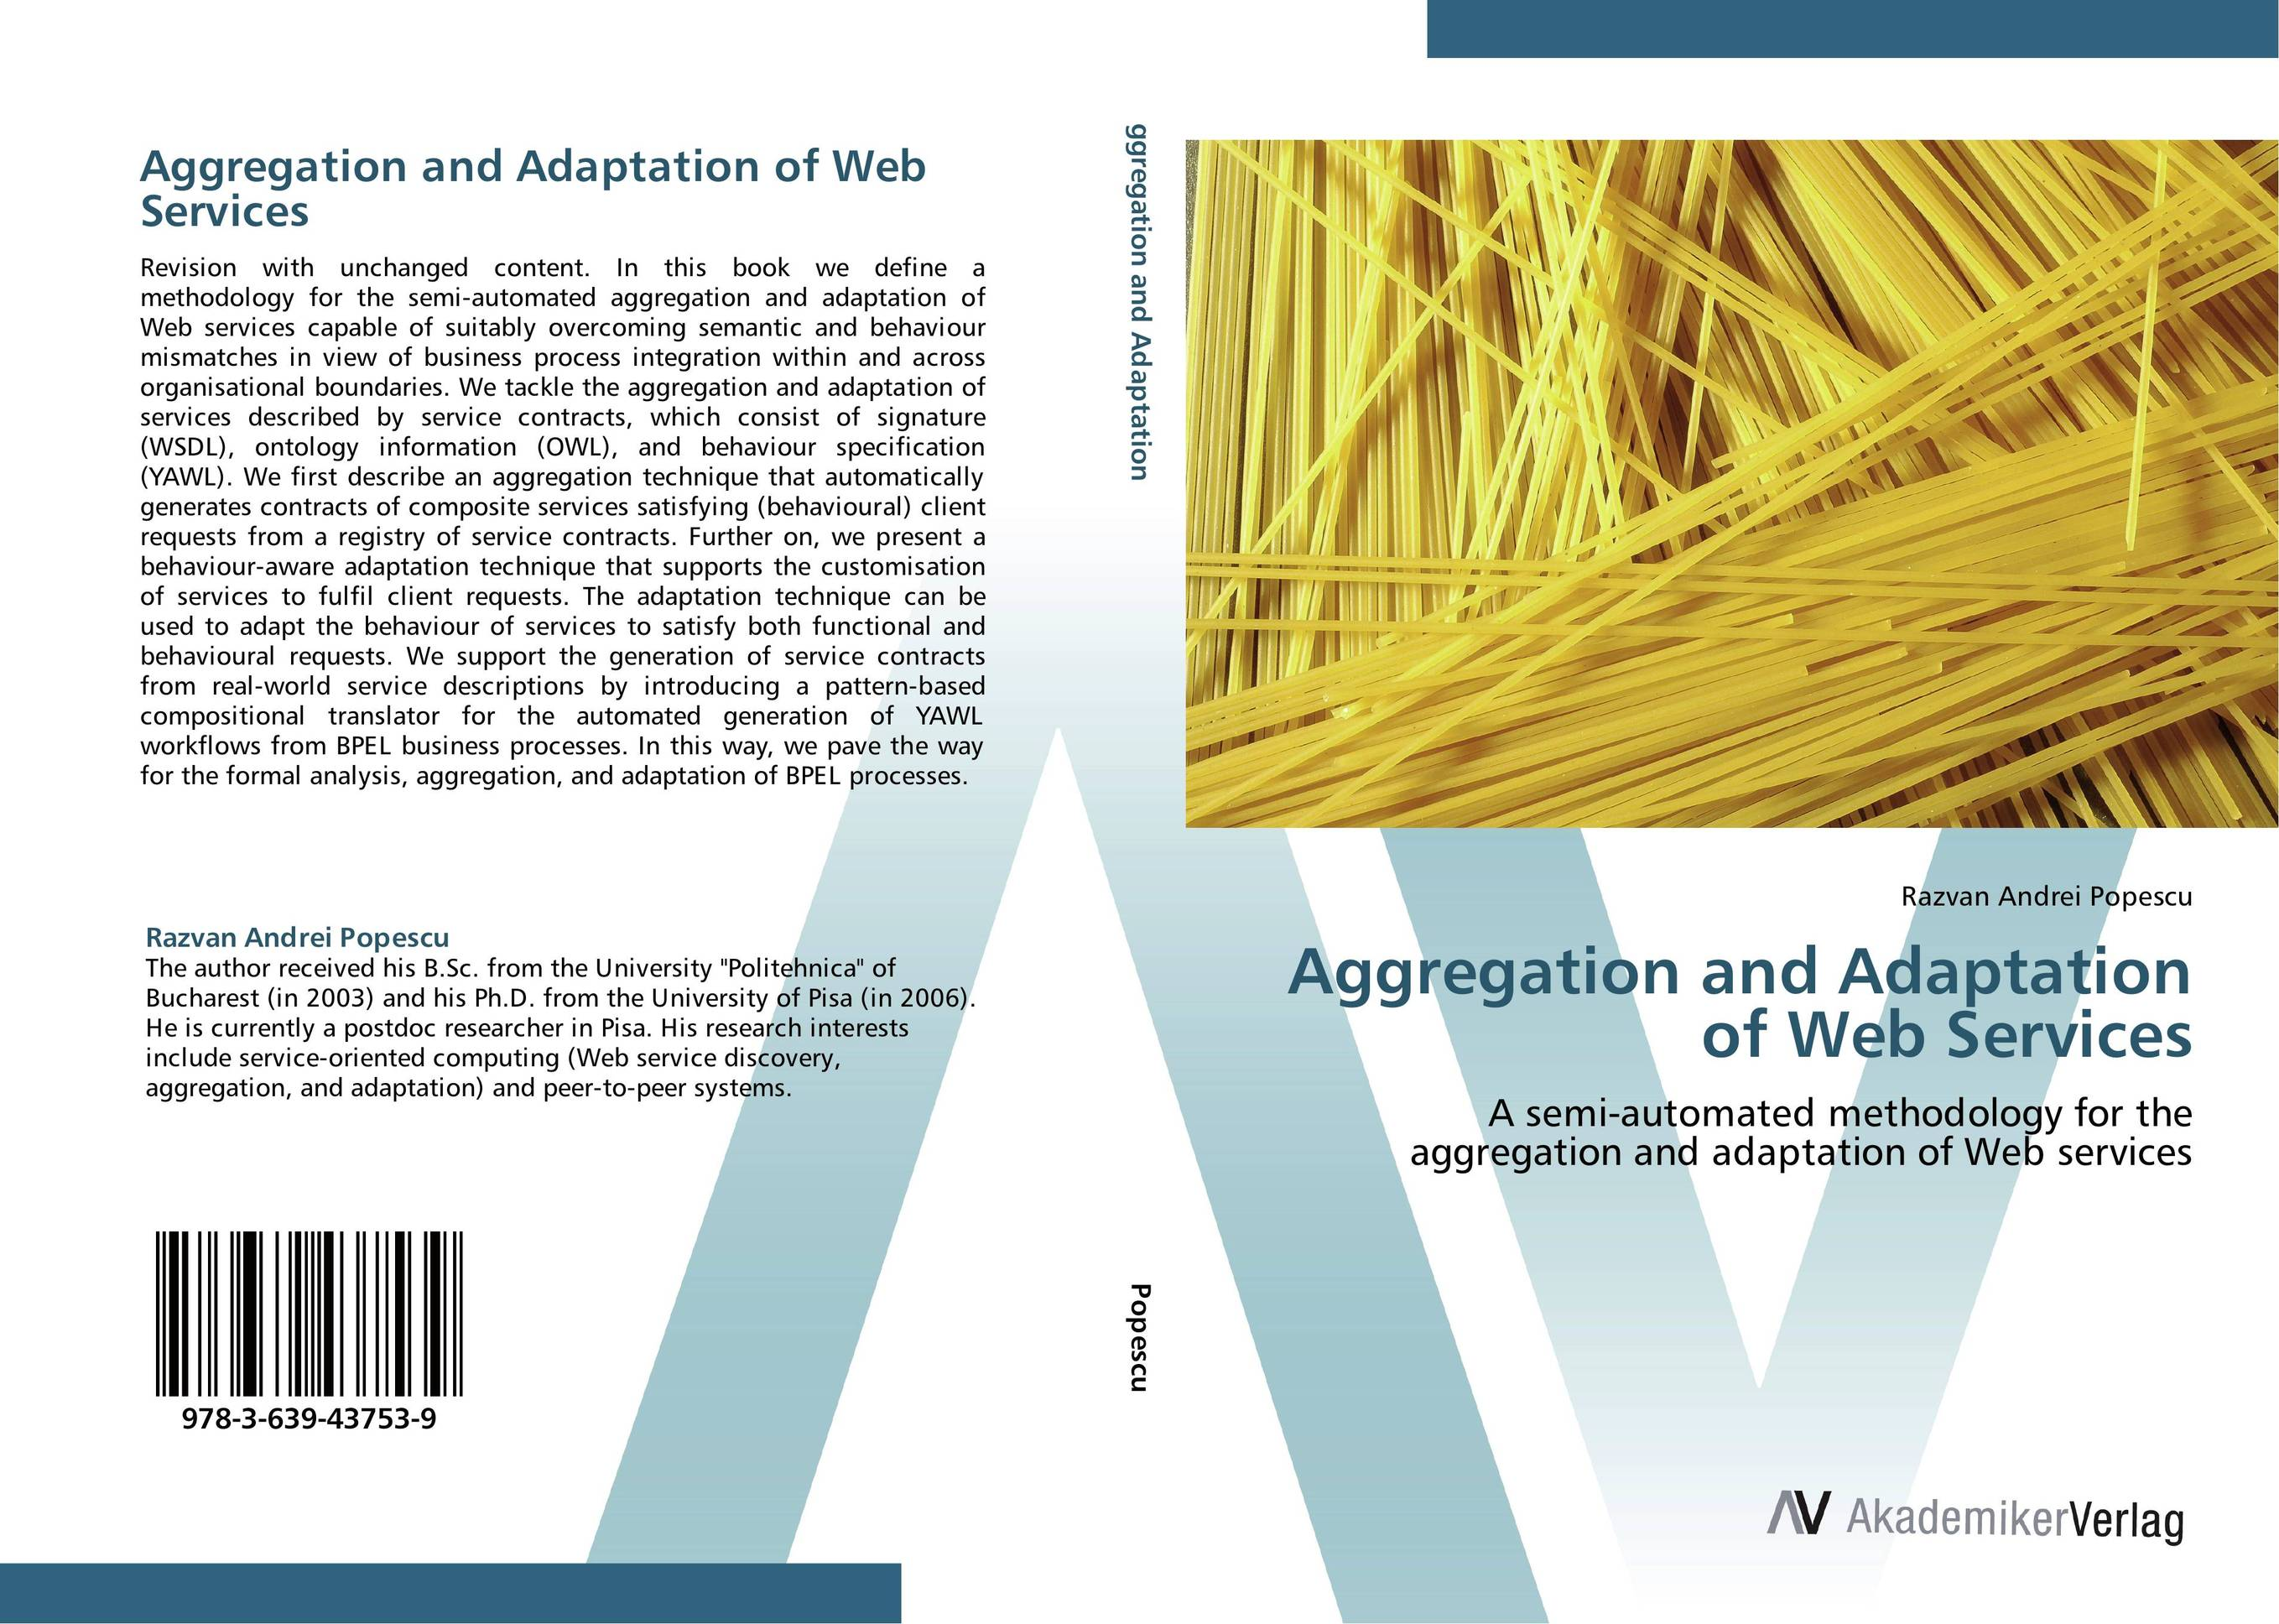 Aggregation and Adaptation of Web Services